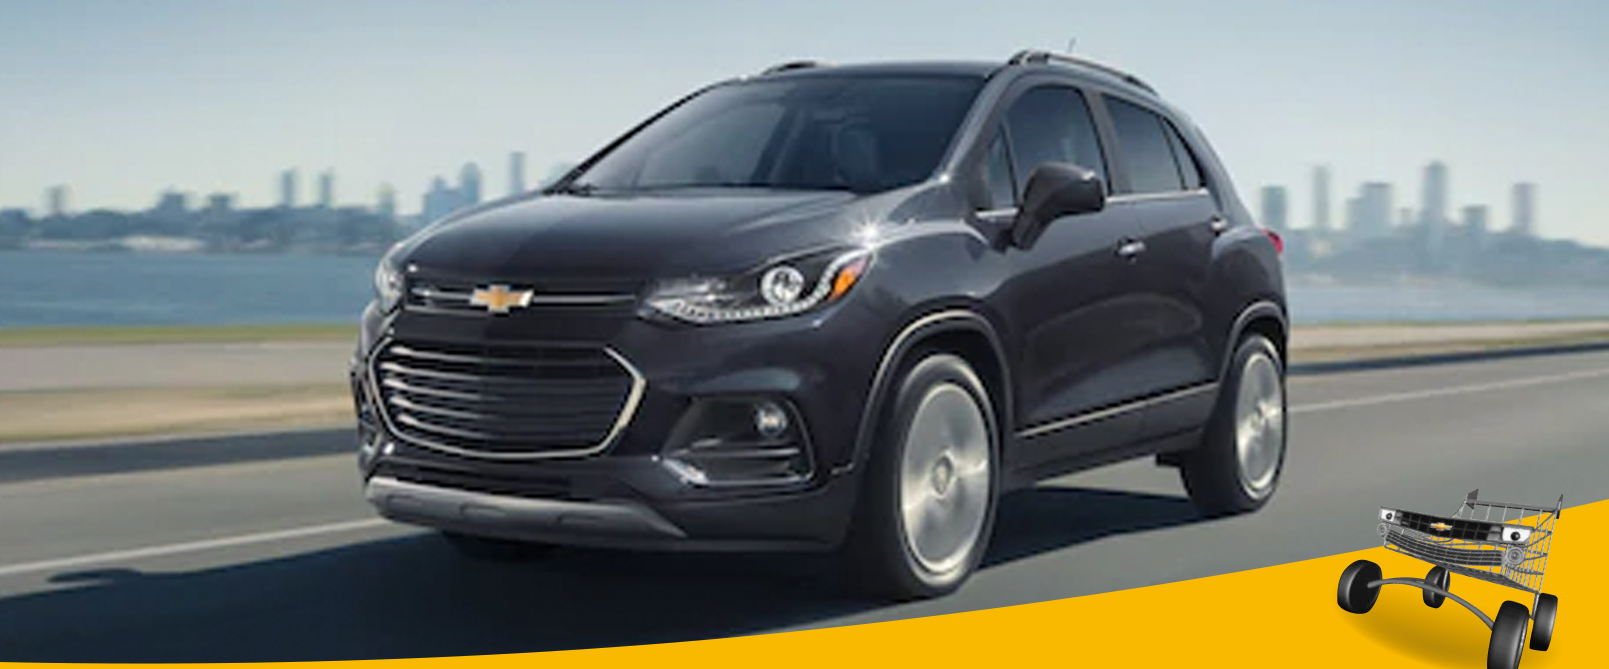 Steger IL 2020 Chevy Trax SUV Dealer